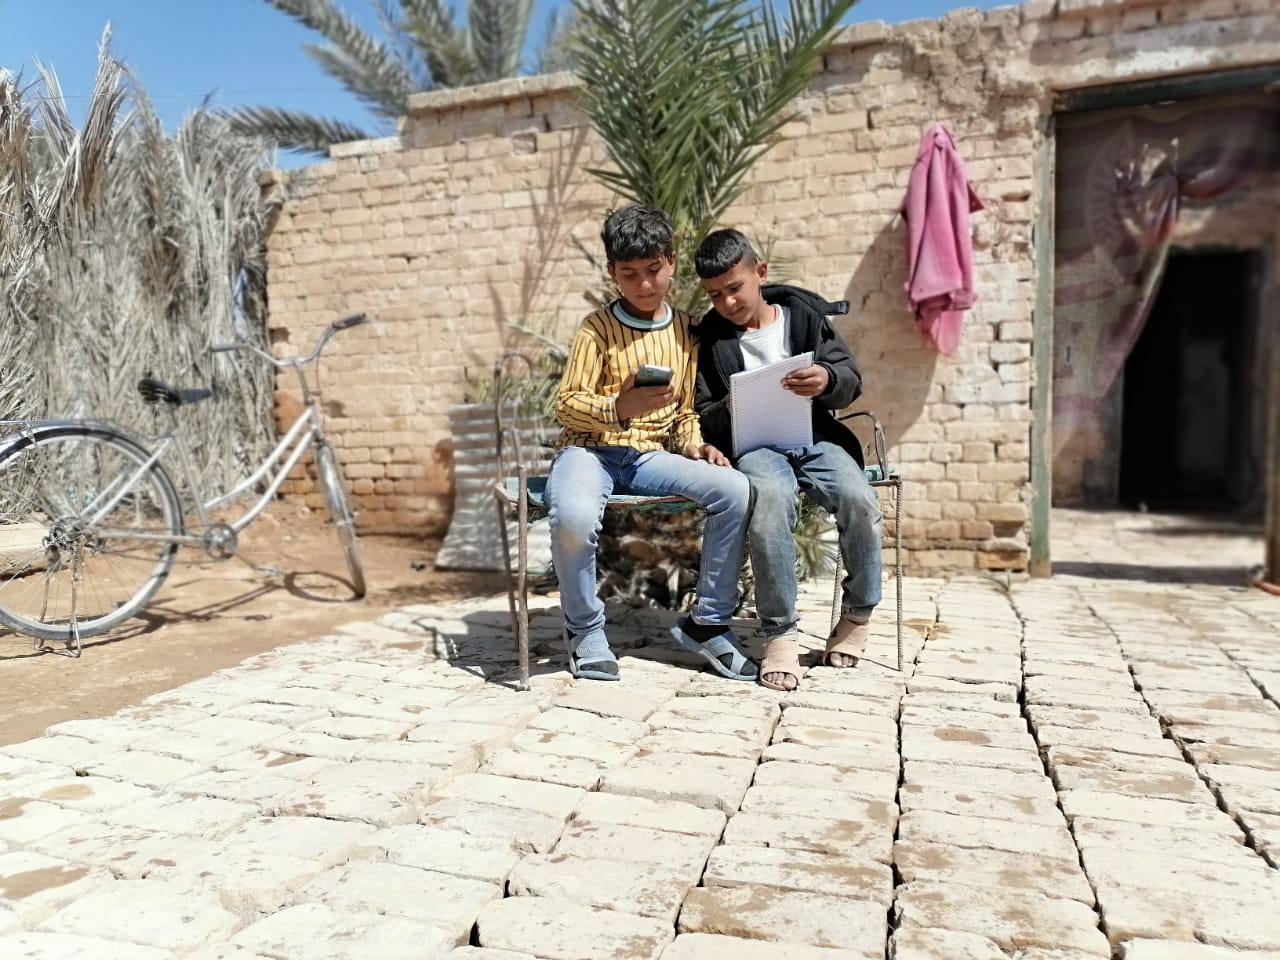 Ahmed and his friend at Al-Mahatta displacement camp in Iraq.